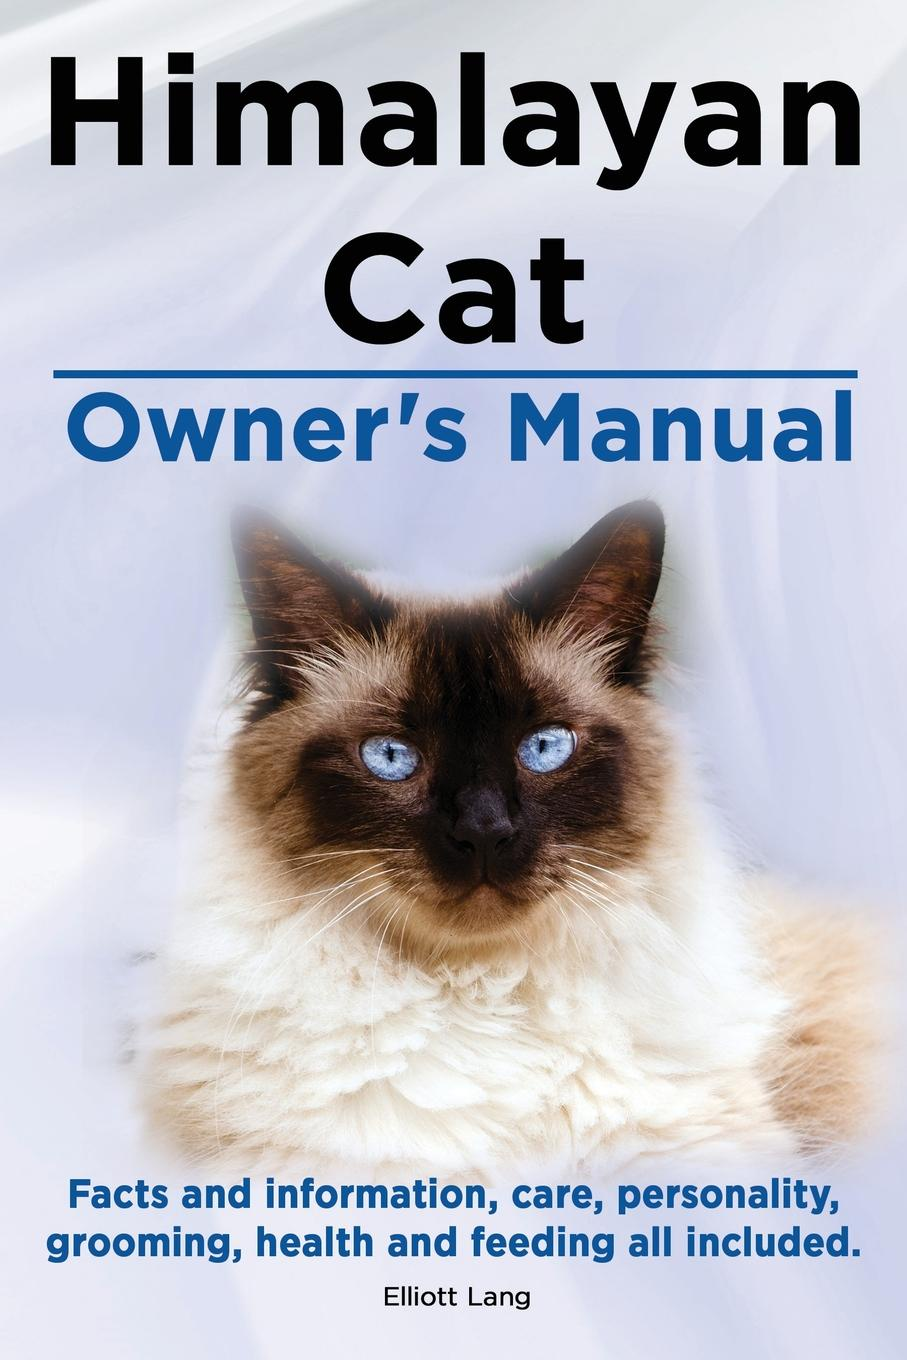 Elliott Lang Himalayan Cat Owner's Manual. Himalayan Cat Facts and Information, Care, Personality, Grooming, Health and Feeding All Included. цена в Москве и Питере